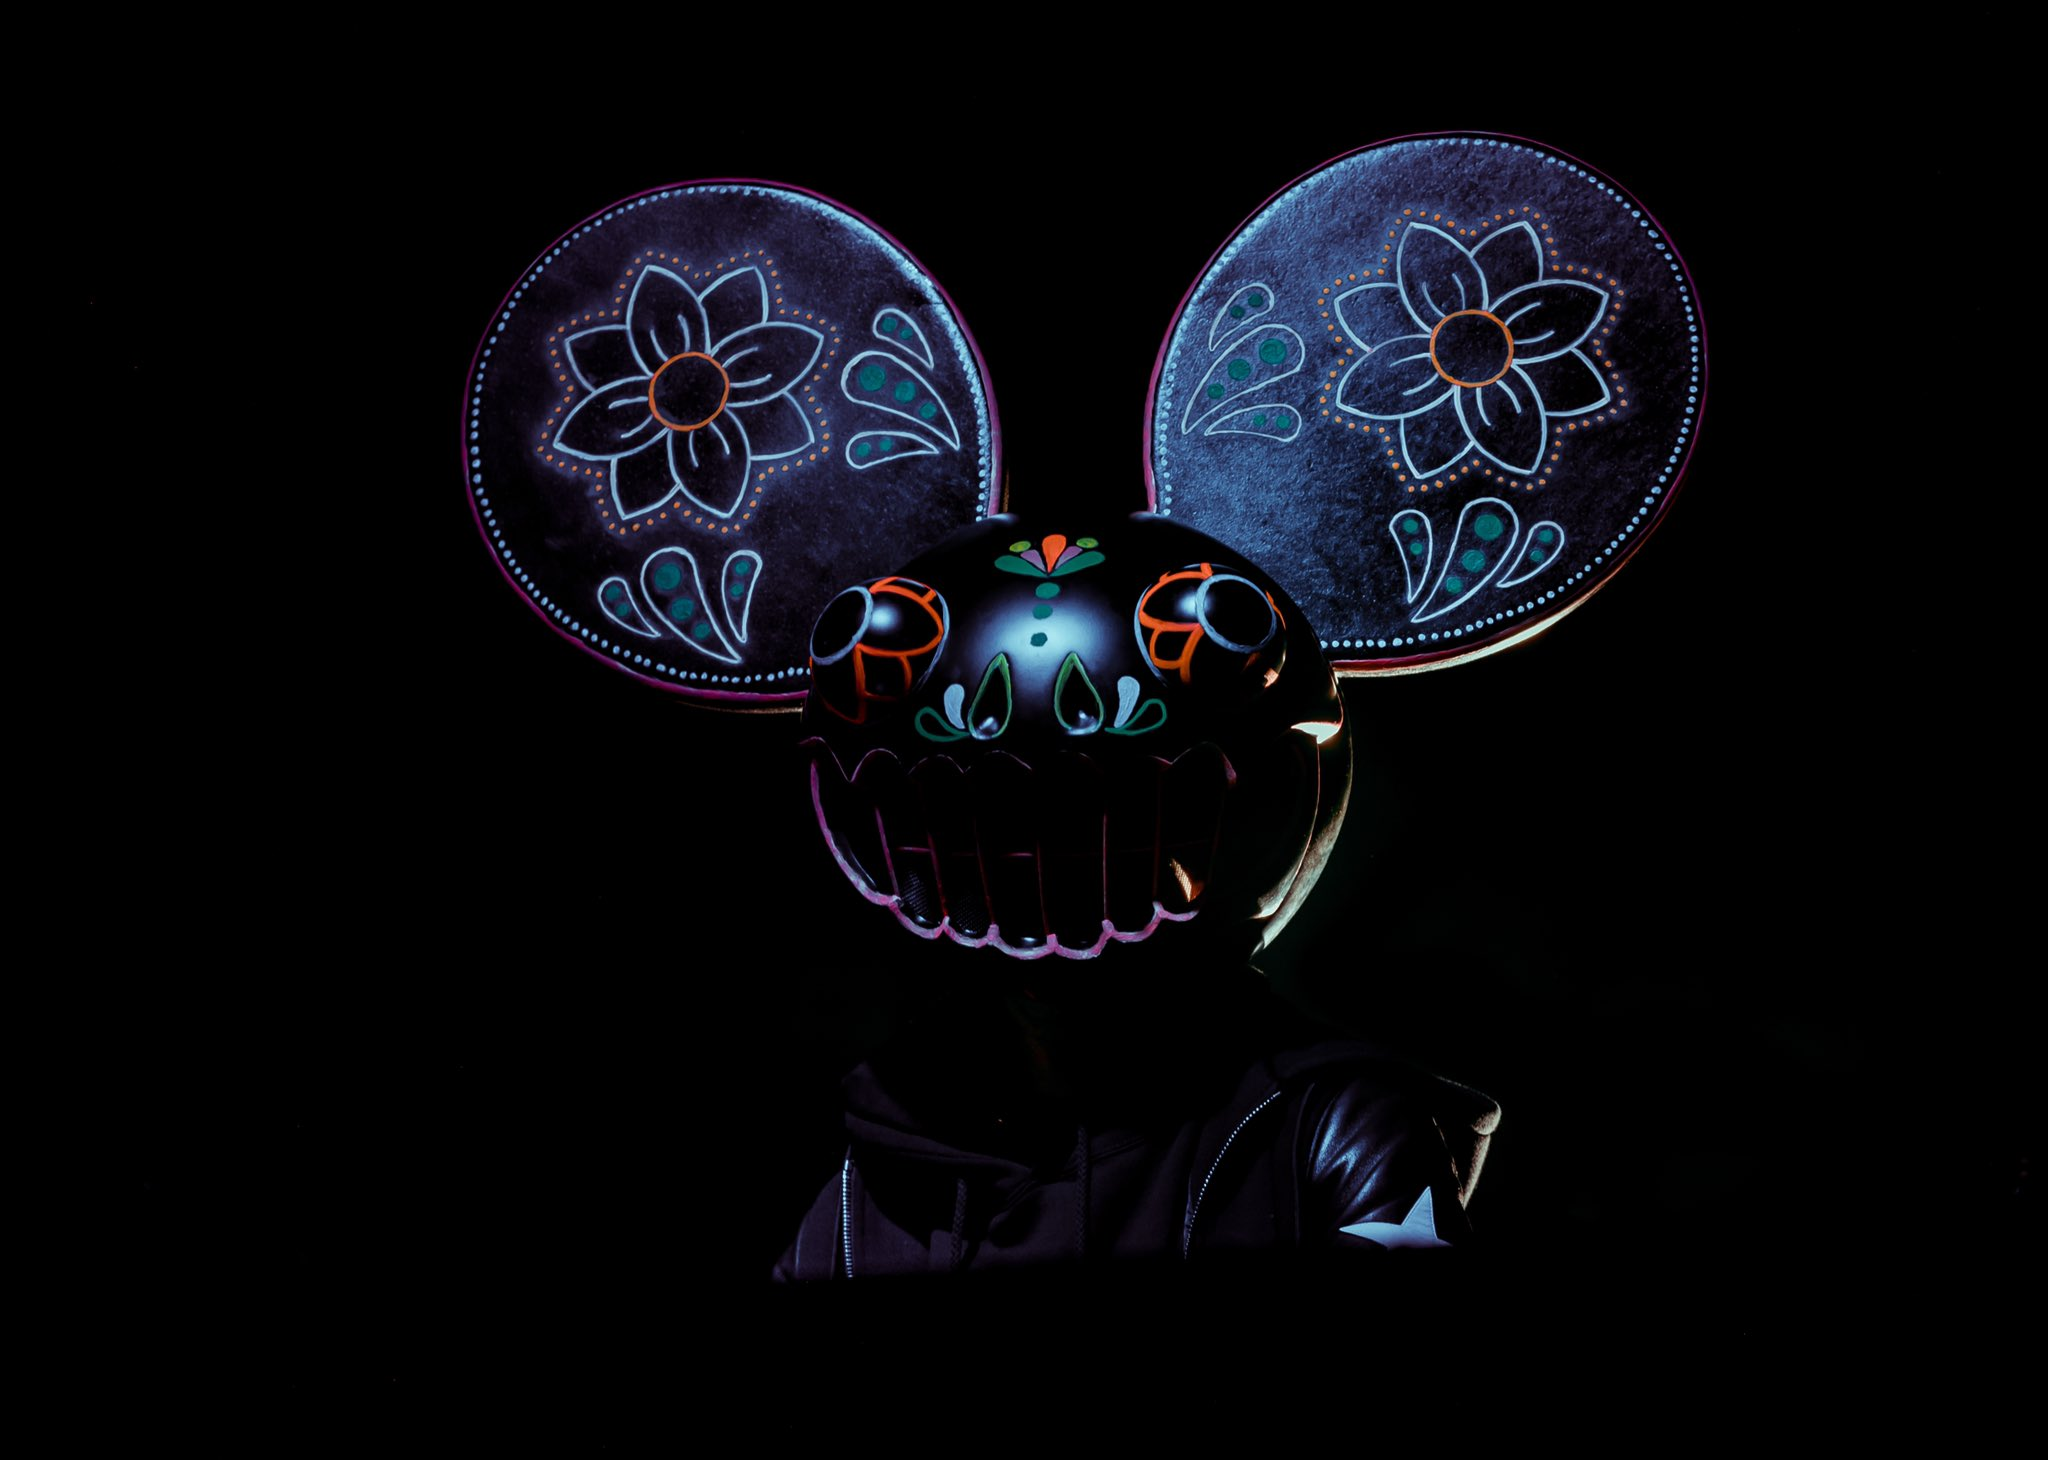 deadmau5 Kiesza Bridged By a Lightwave